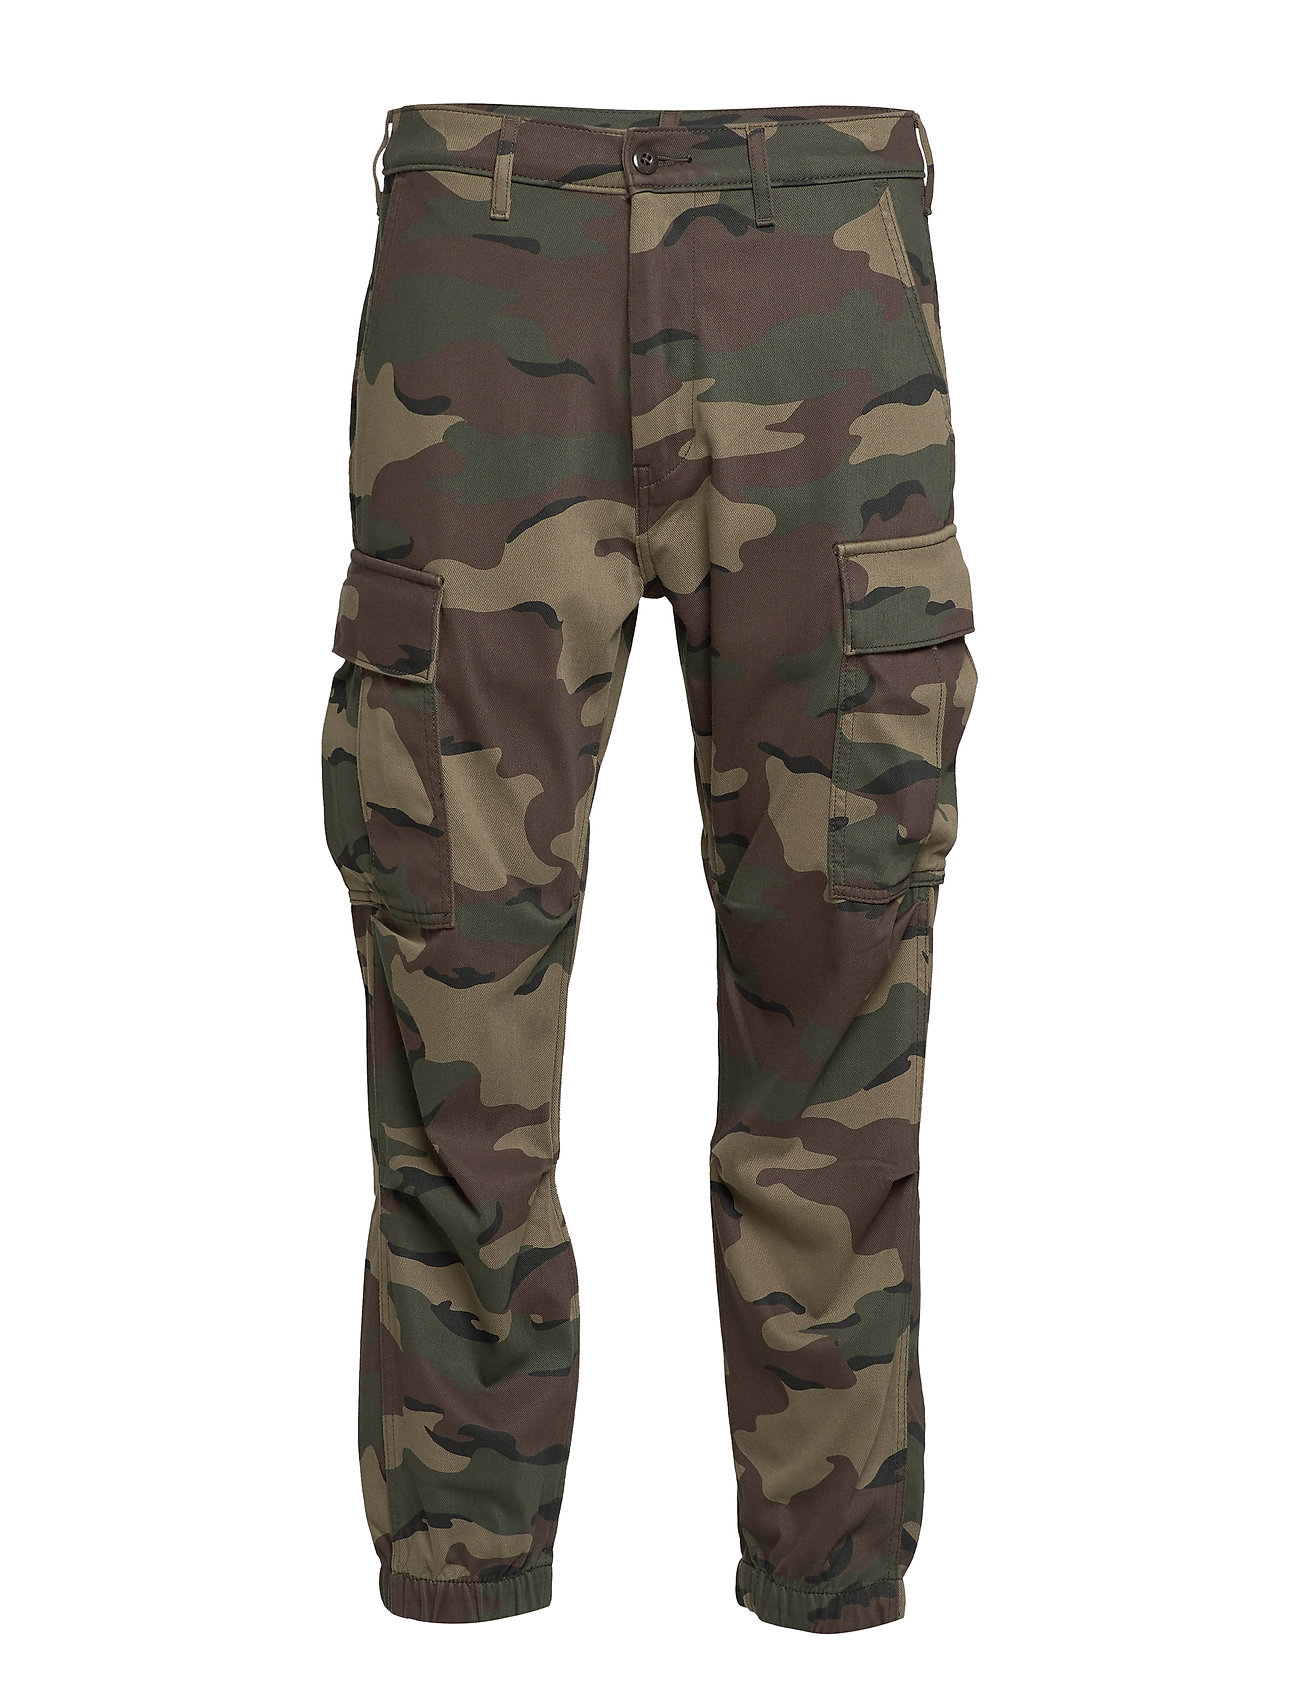 Image of Tapered Cargo Wave Camo Wild C Trousers Cargo Pants Grøn LEVI´S Men (3224971931)